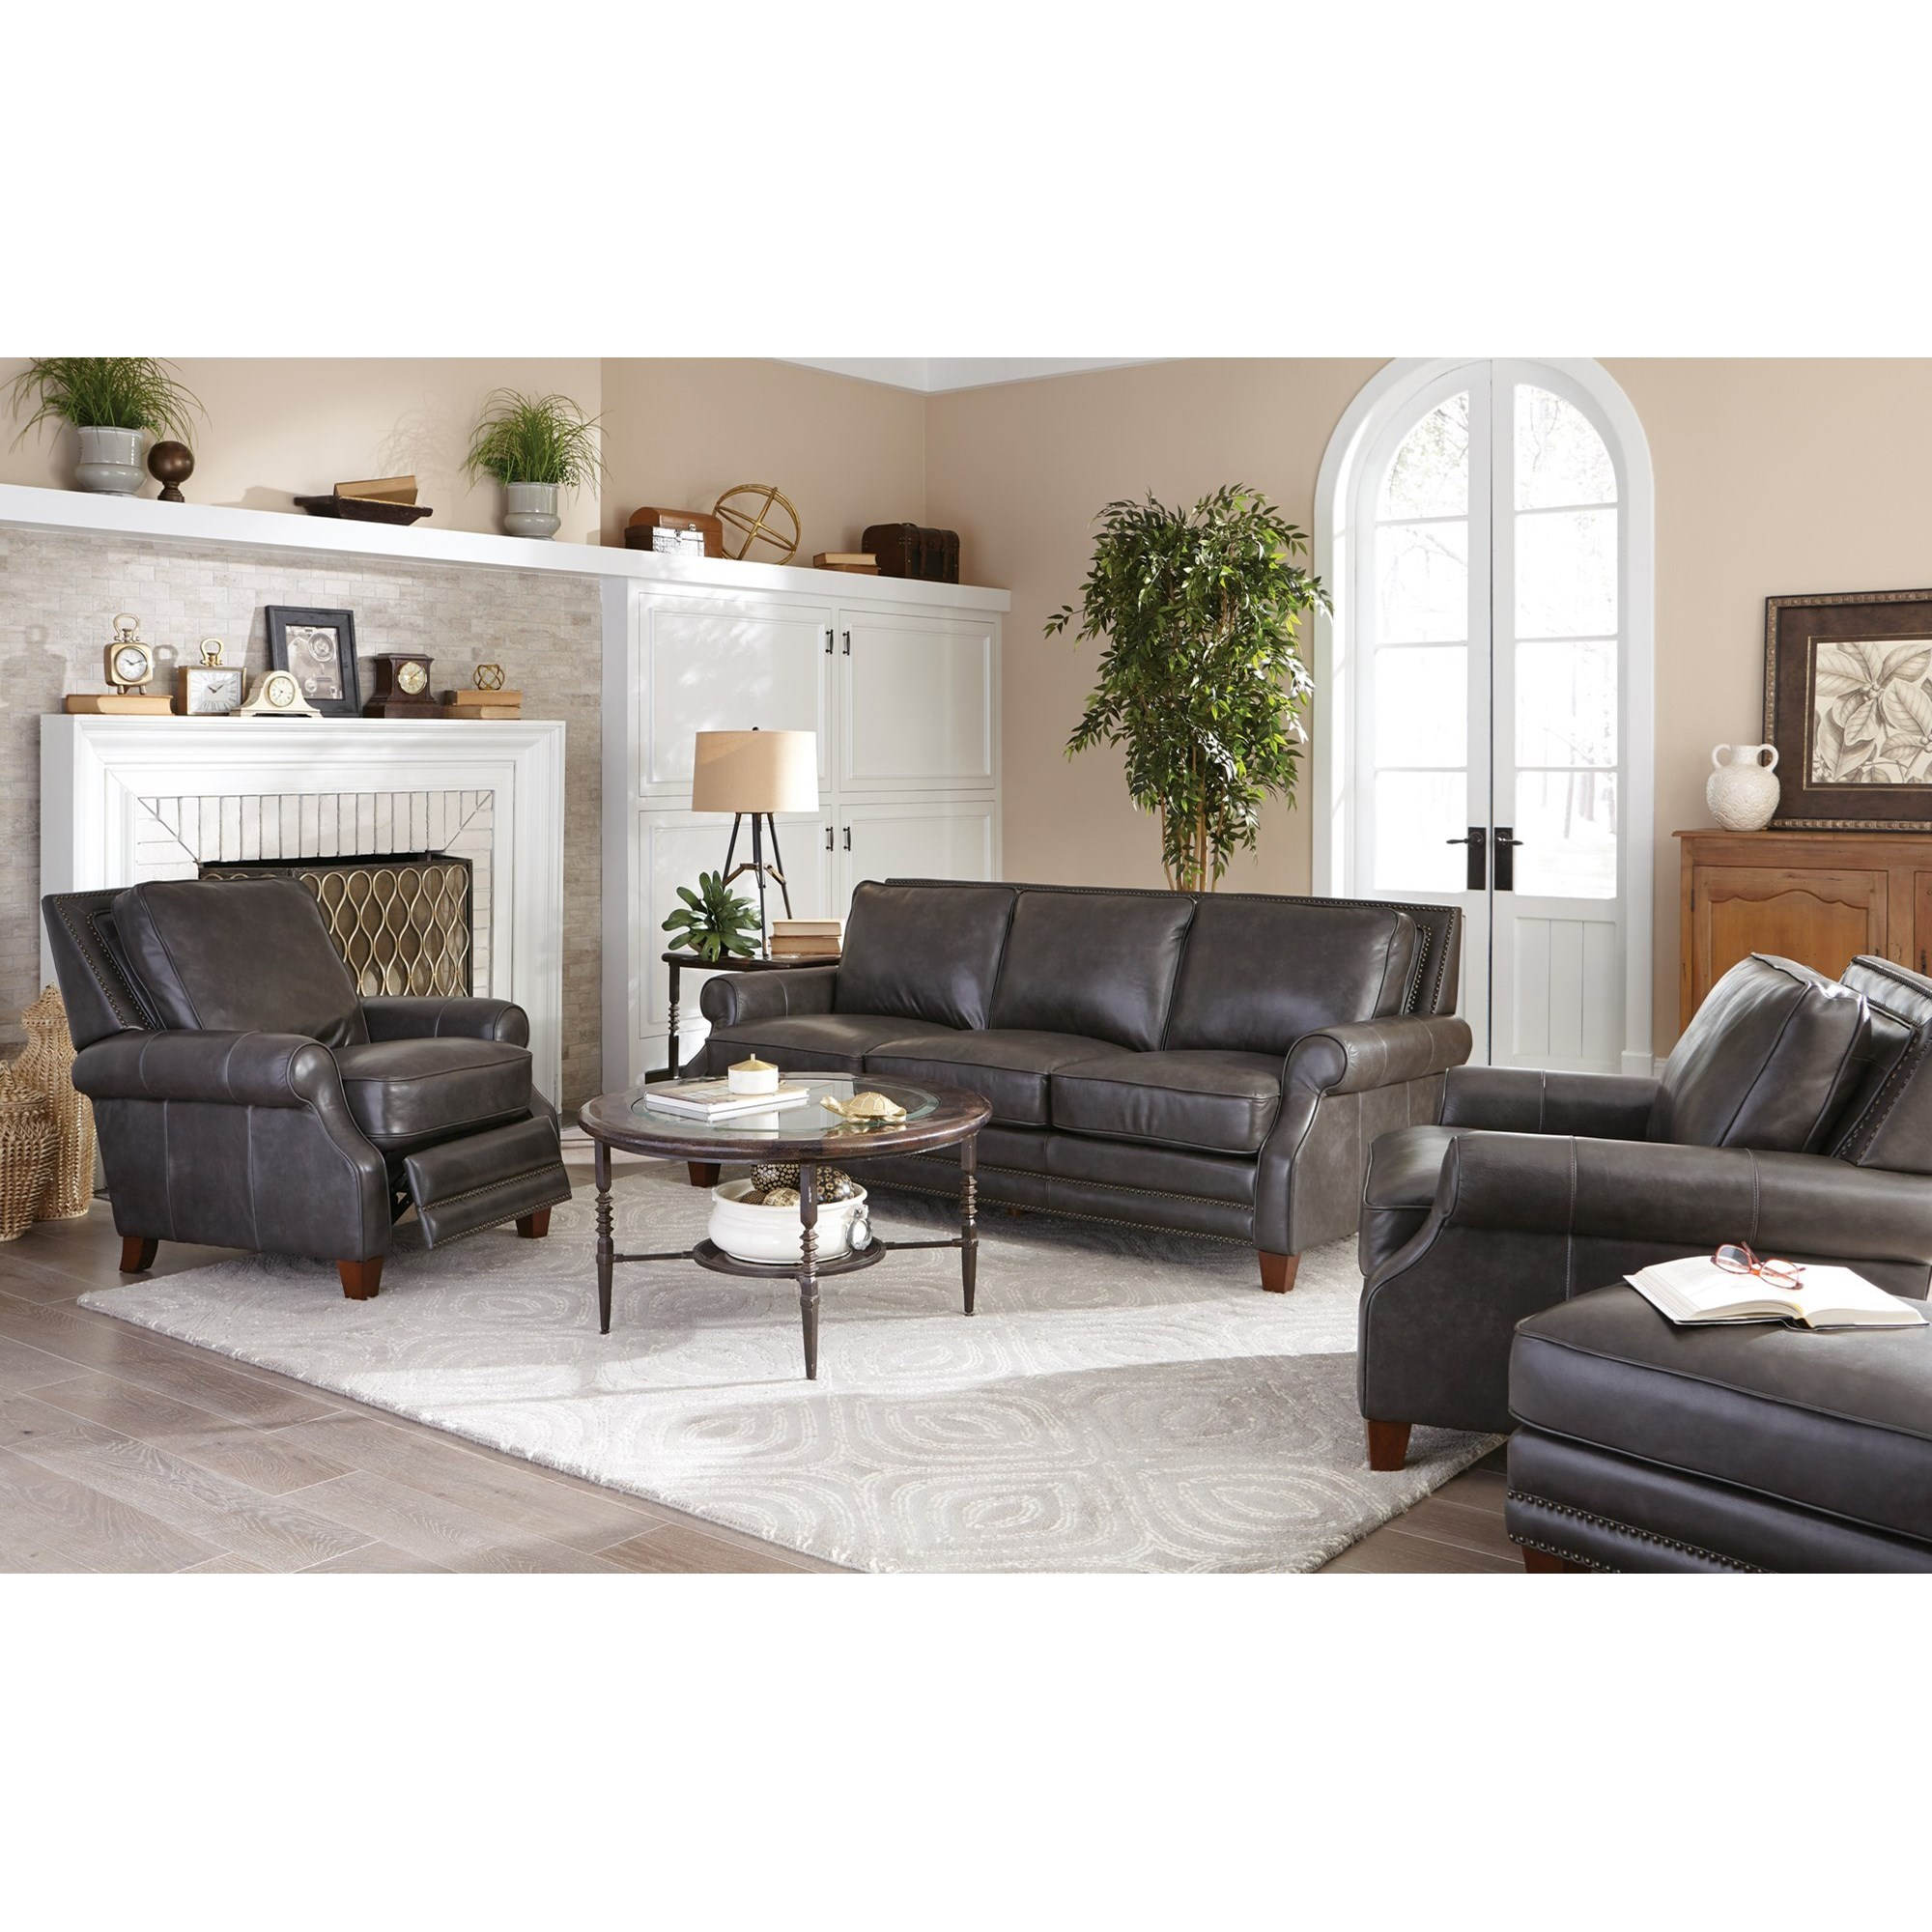 Craftmaster L1640 Living Room Group Boulevard Home Furnishings Stationary Living Room Groups